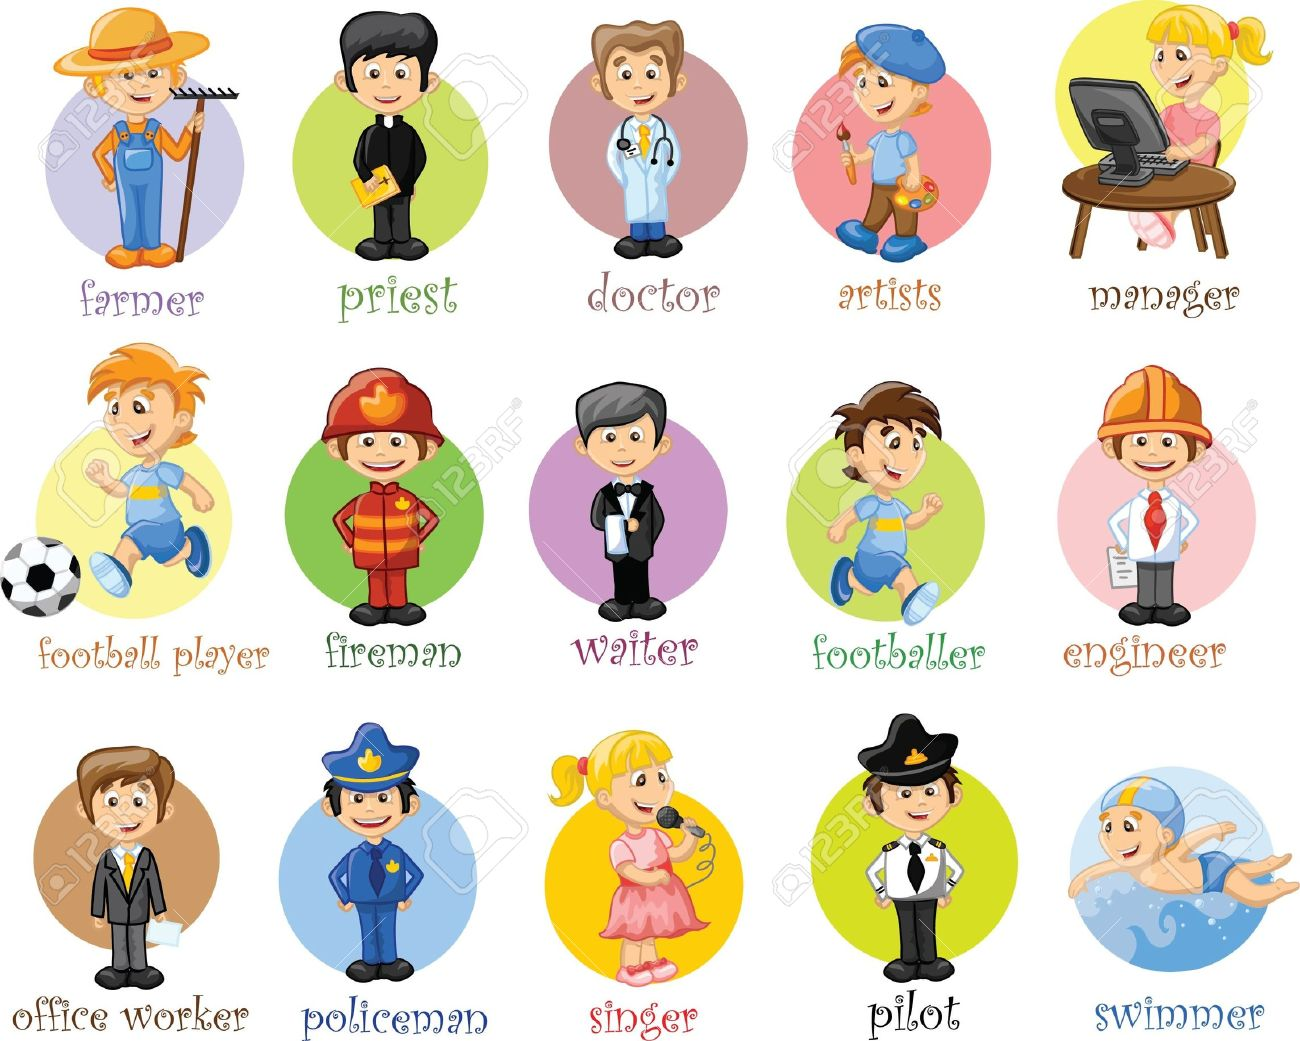 Cartoon characters of different professions.